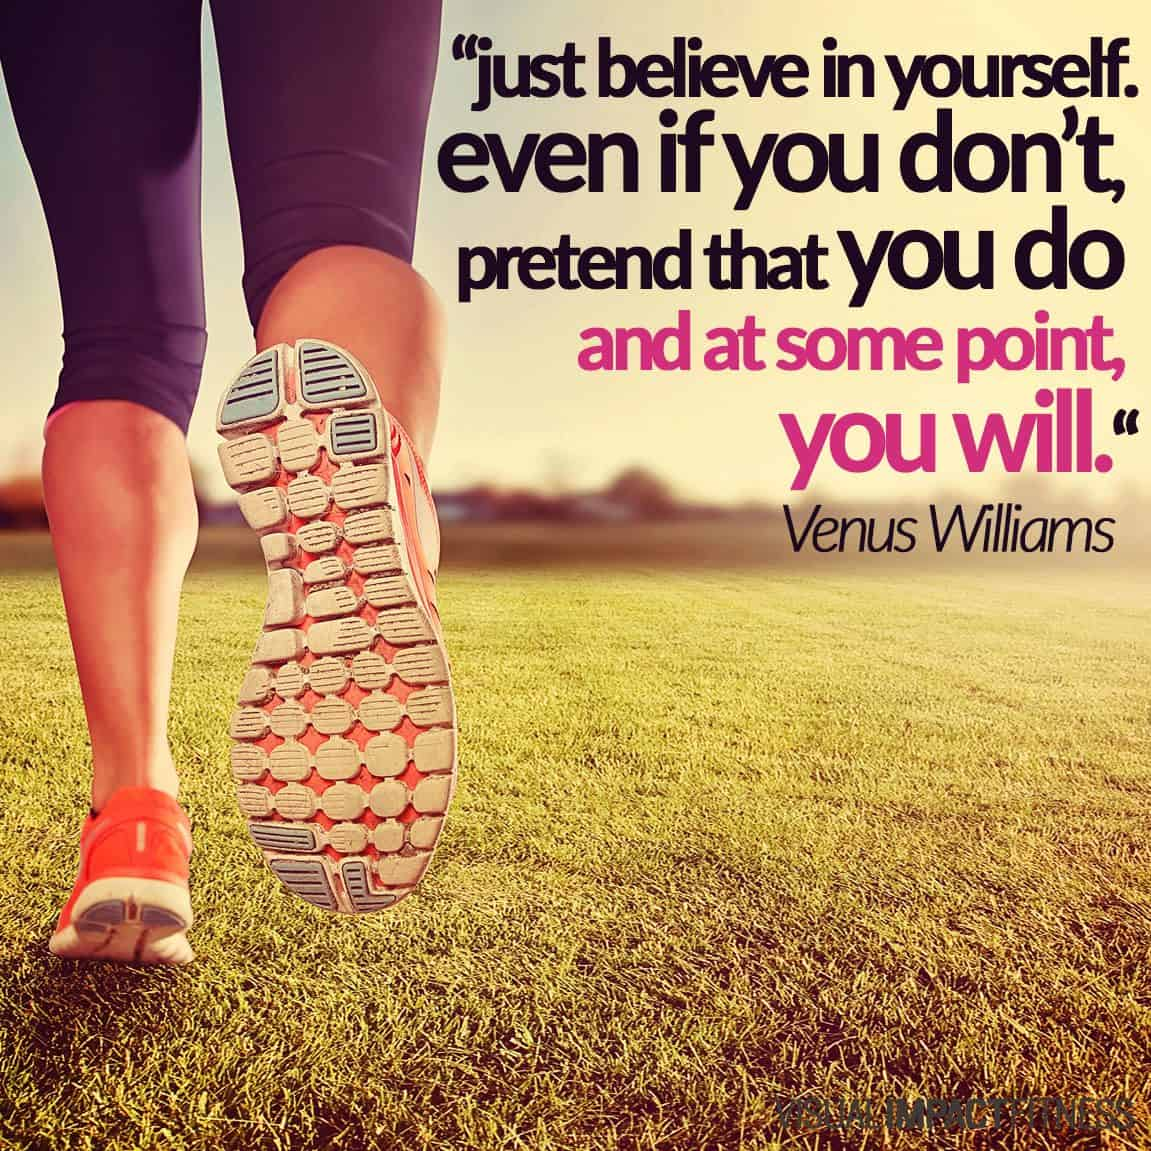 Just believe in yourself. Even if you don't, pretend that you do and at some point you will.